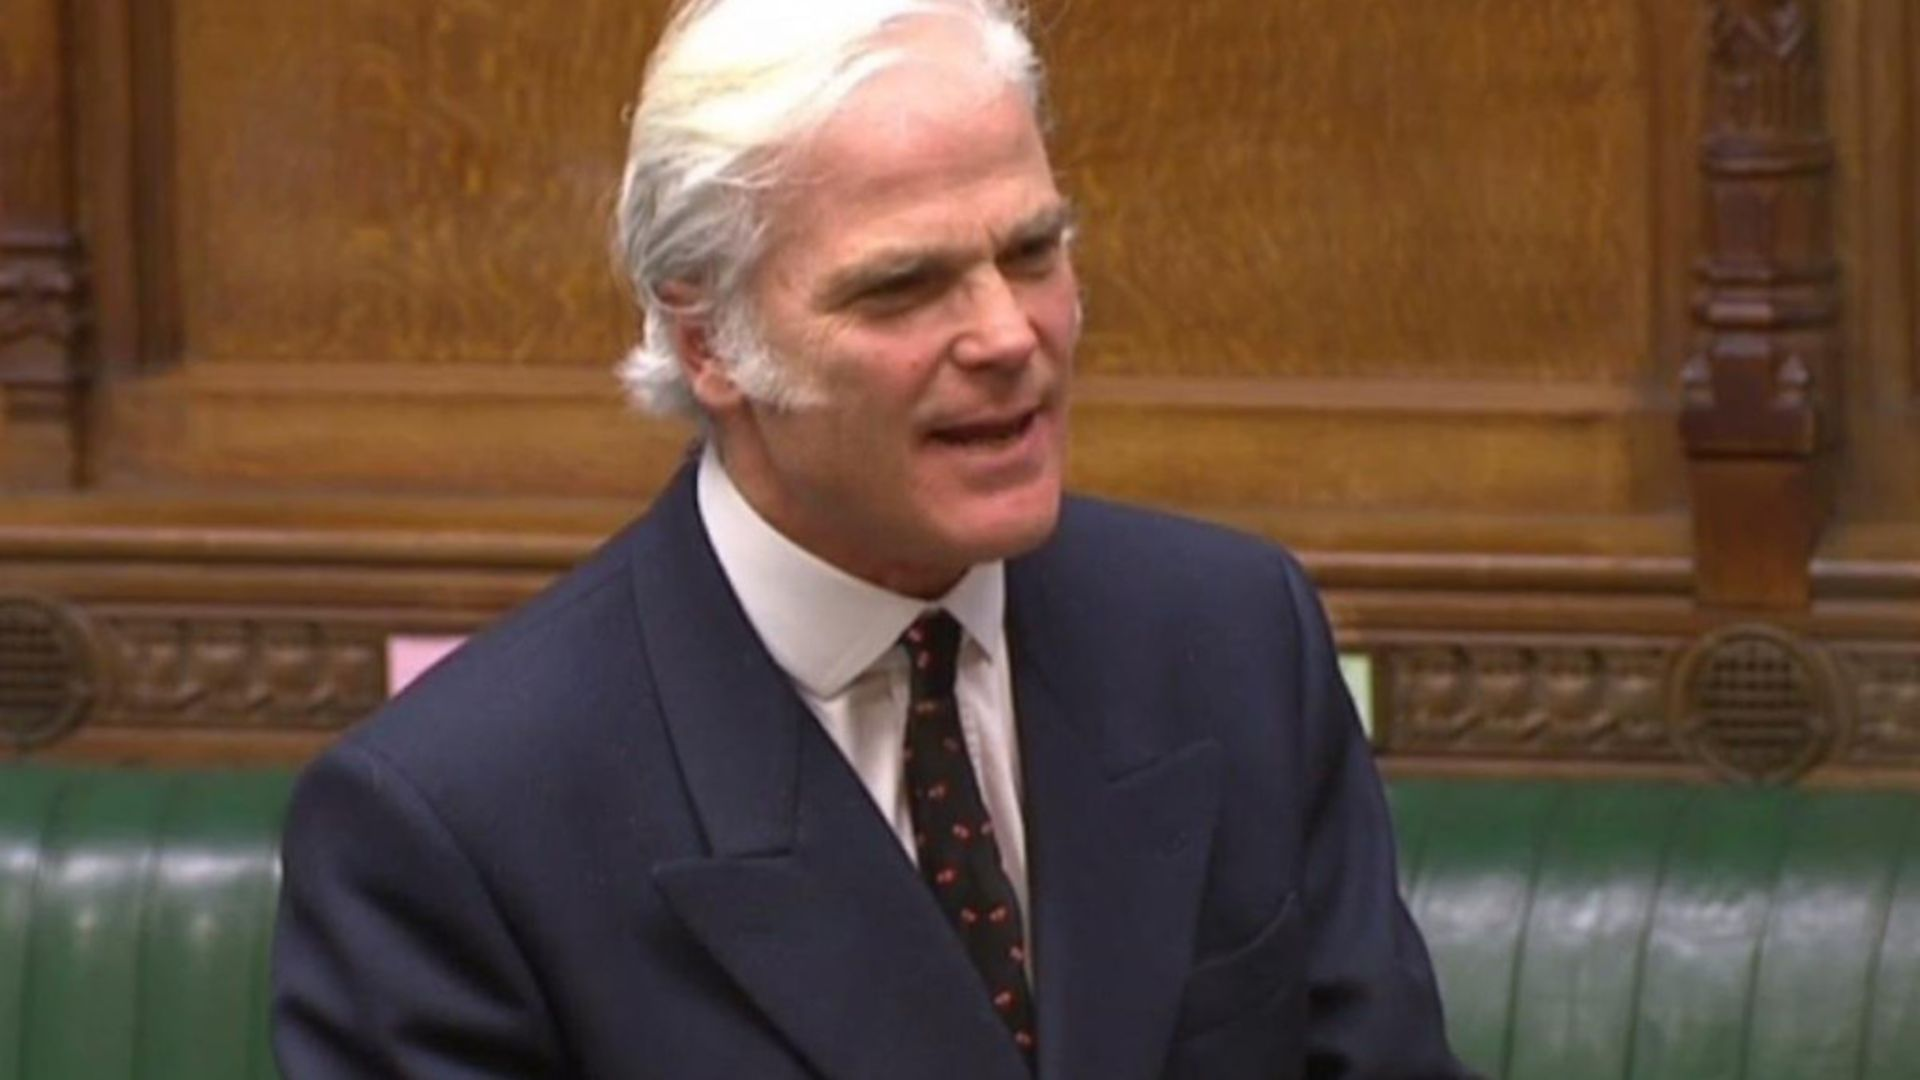 Sir Desmond Swayne in the House of Commons - Credit: Parliament Live